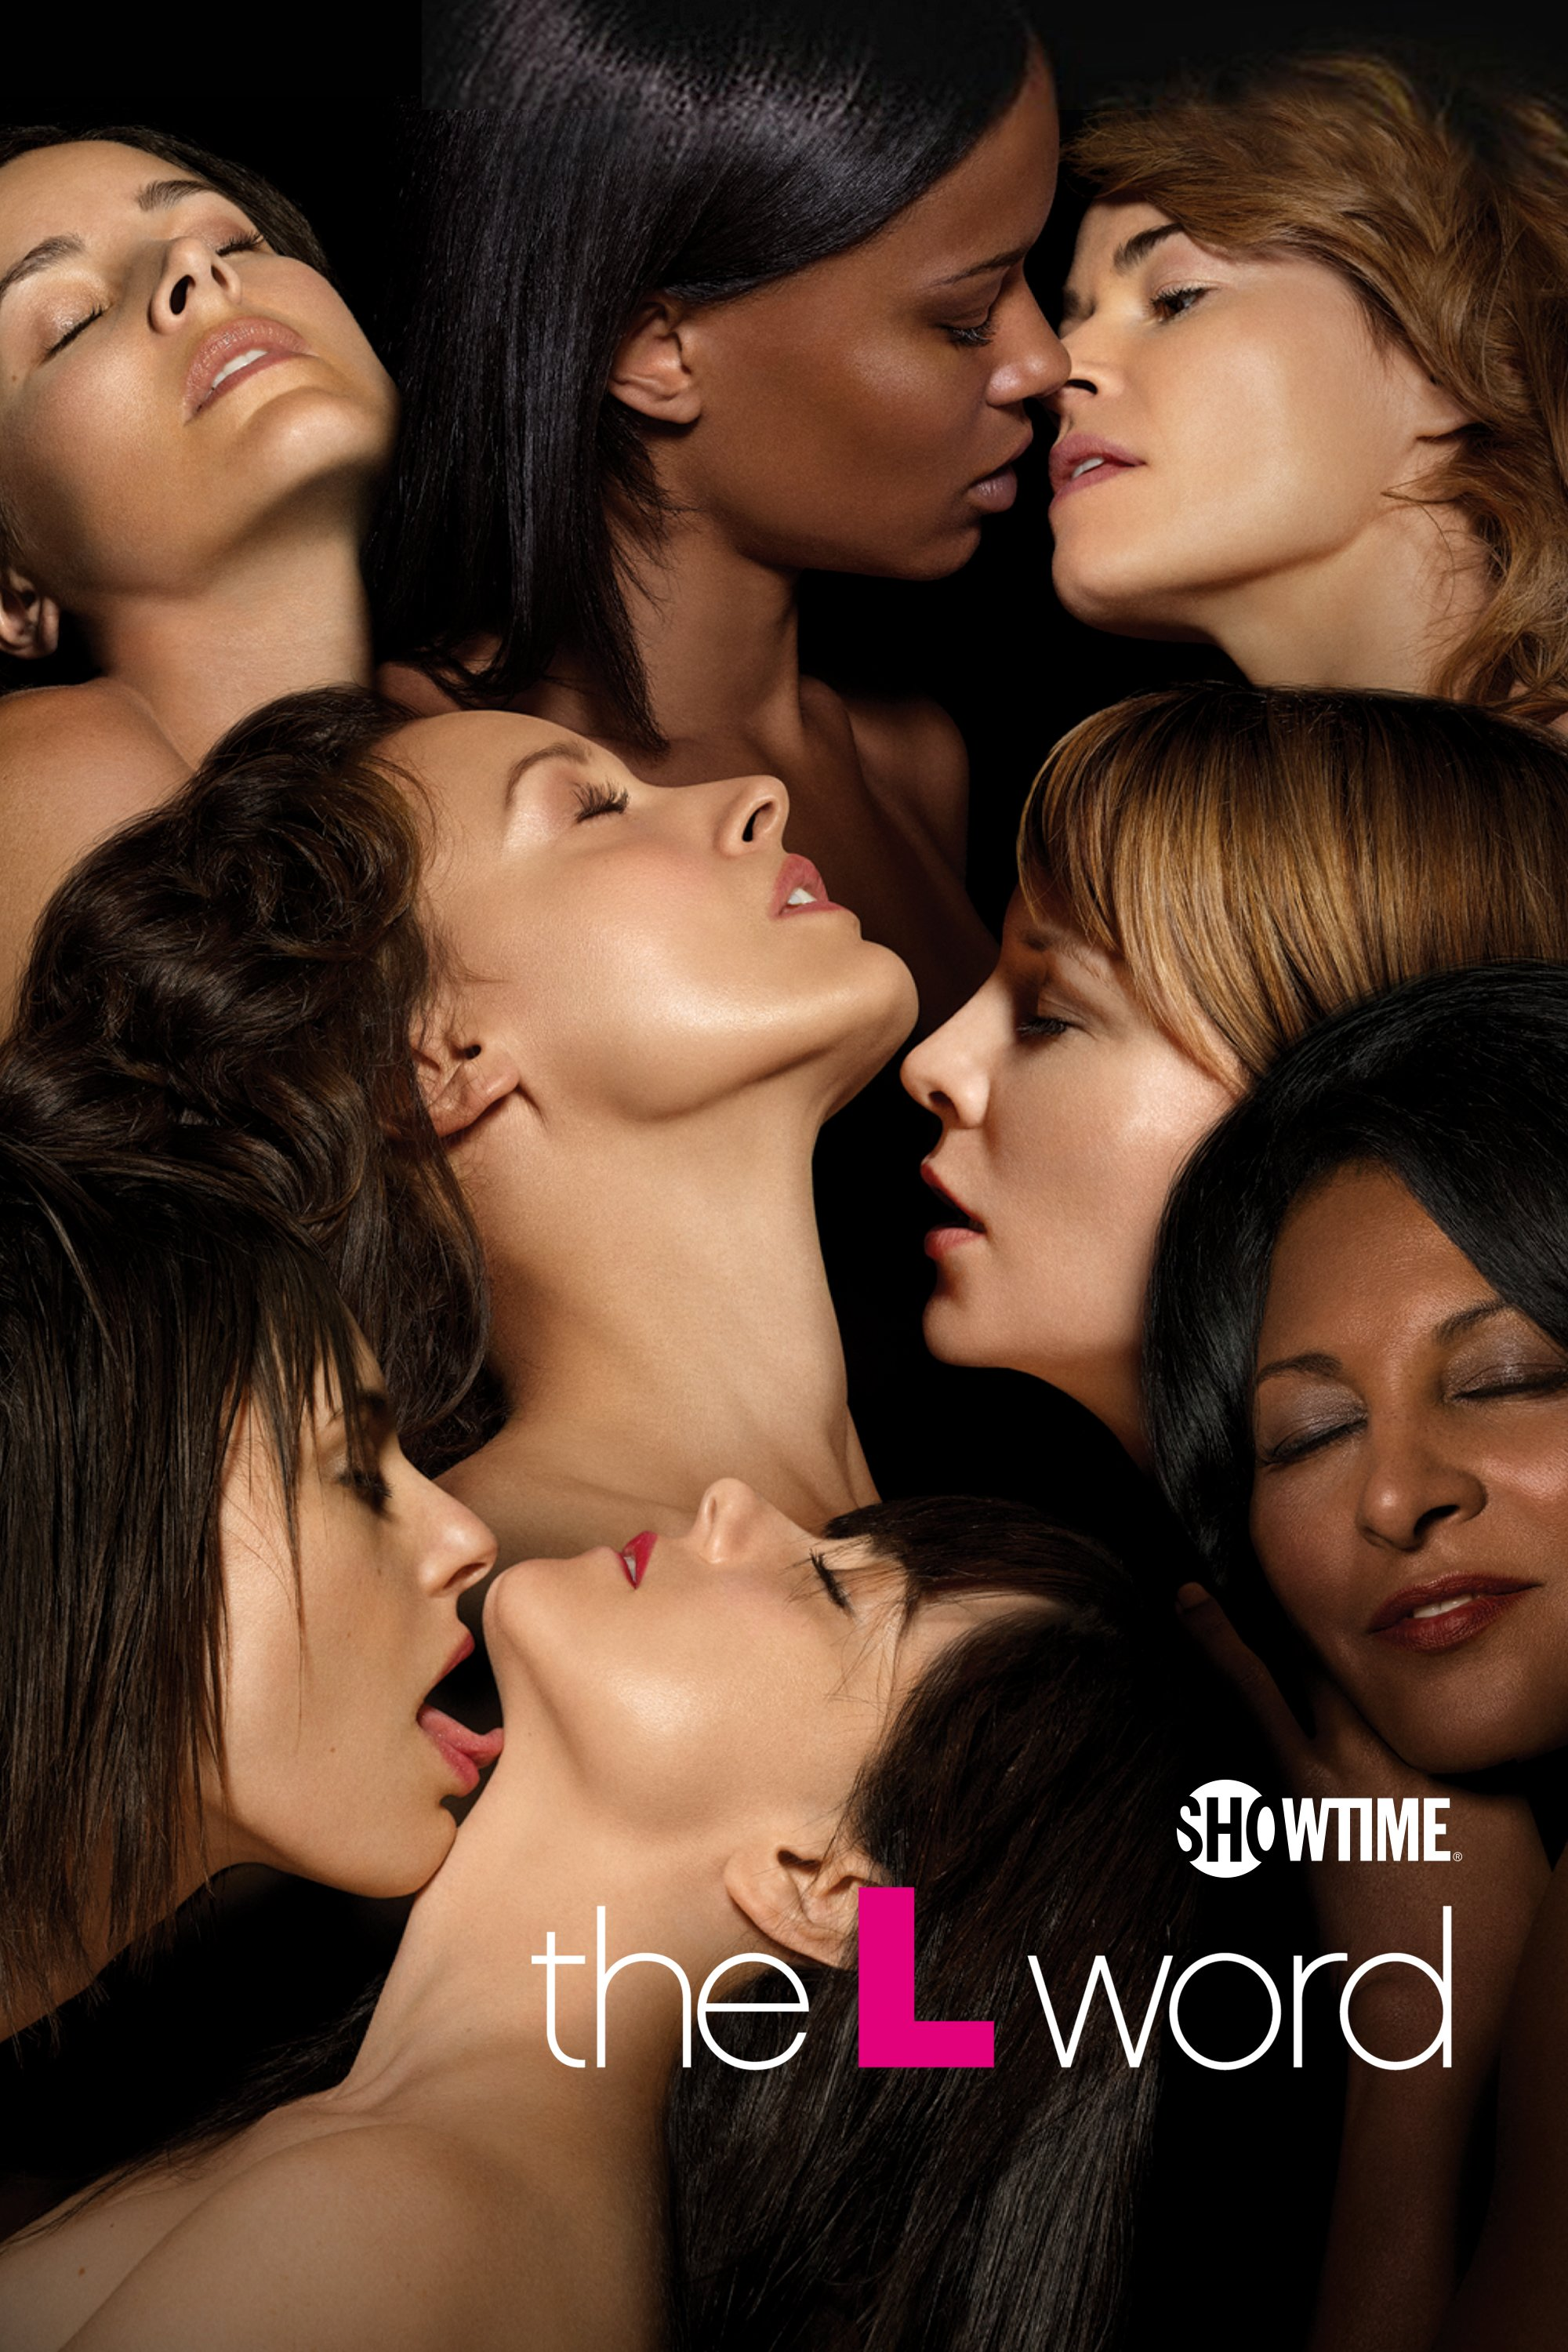 Polyamory married and hookup showtime movies this month